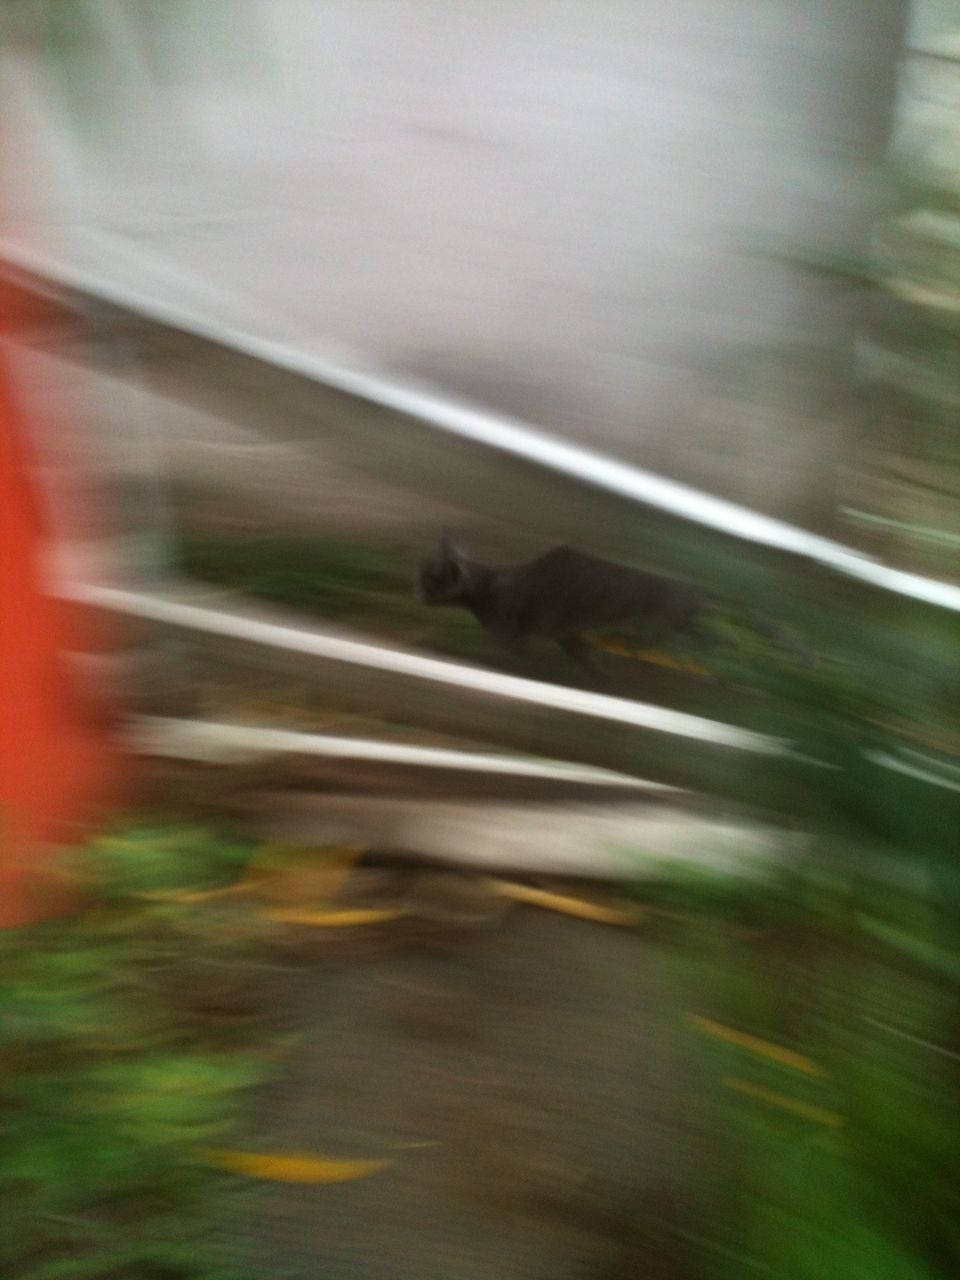 blurred motion, motion, speed, outdoors, transportation, water, day, nature, no people, animal themes, defocused, technology, close-up, mammal